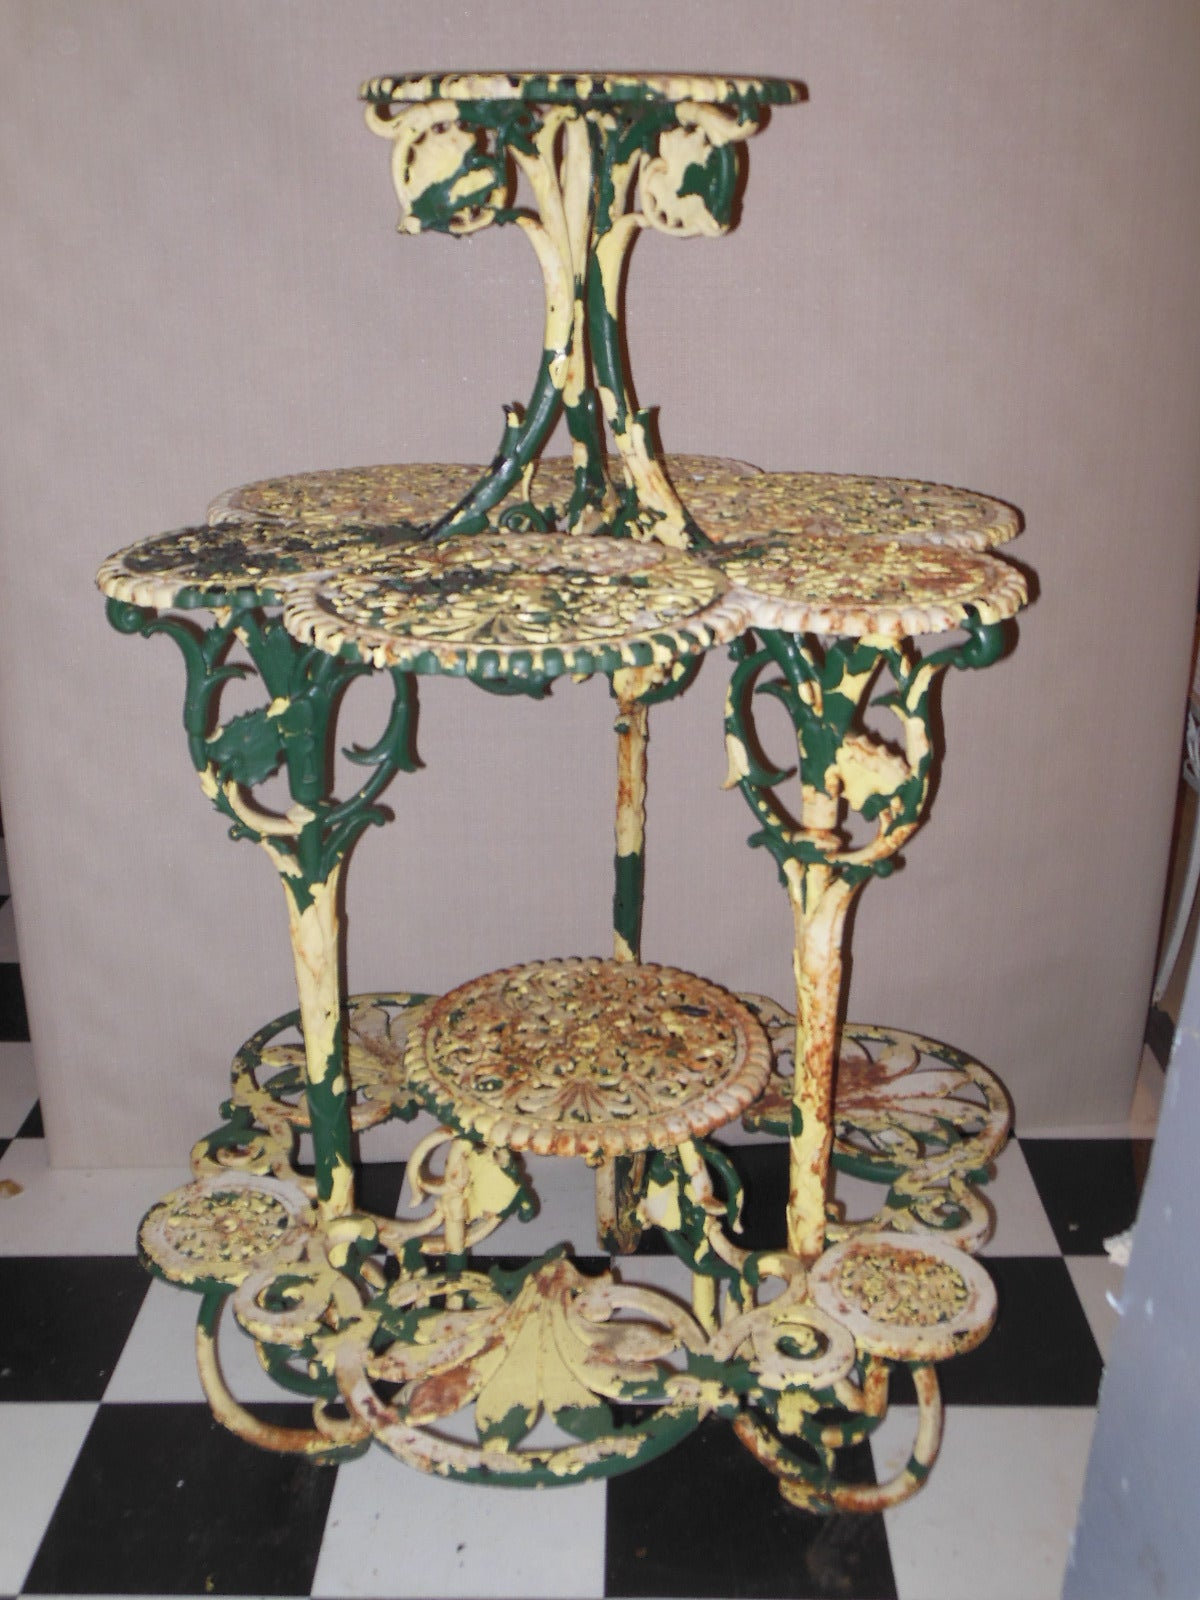 A cast iron circular four-tier plant stand strongly attributed to Coalbrookdale. The plant stand with details of vigorously carved leaves and pierced lacy circular tiered stands. The plant stand, from my personal collection when purchased over 20